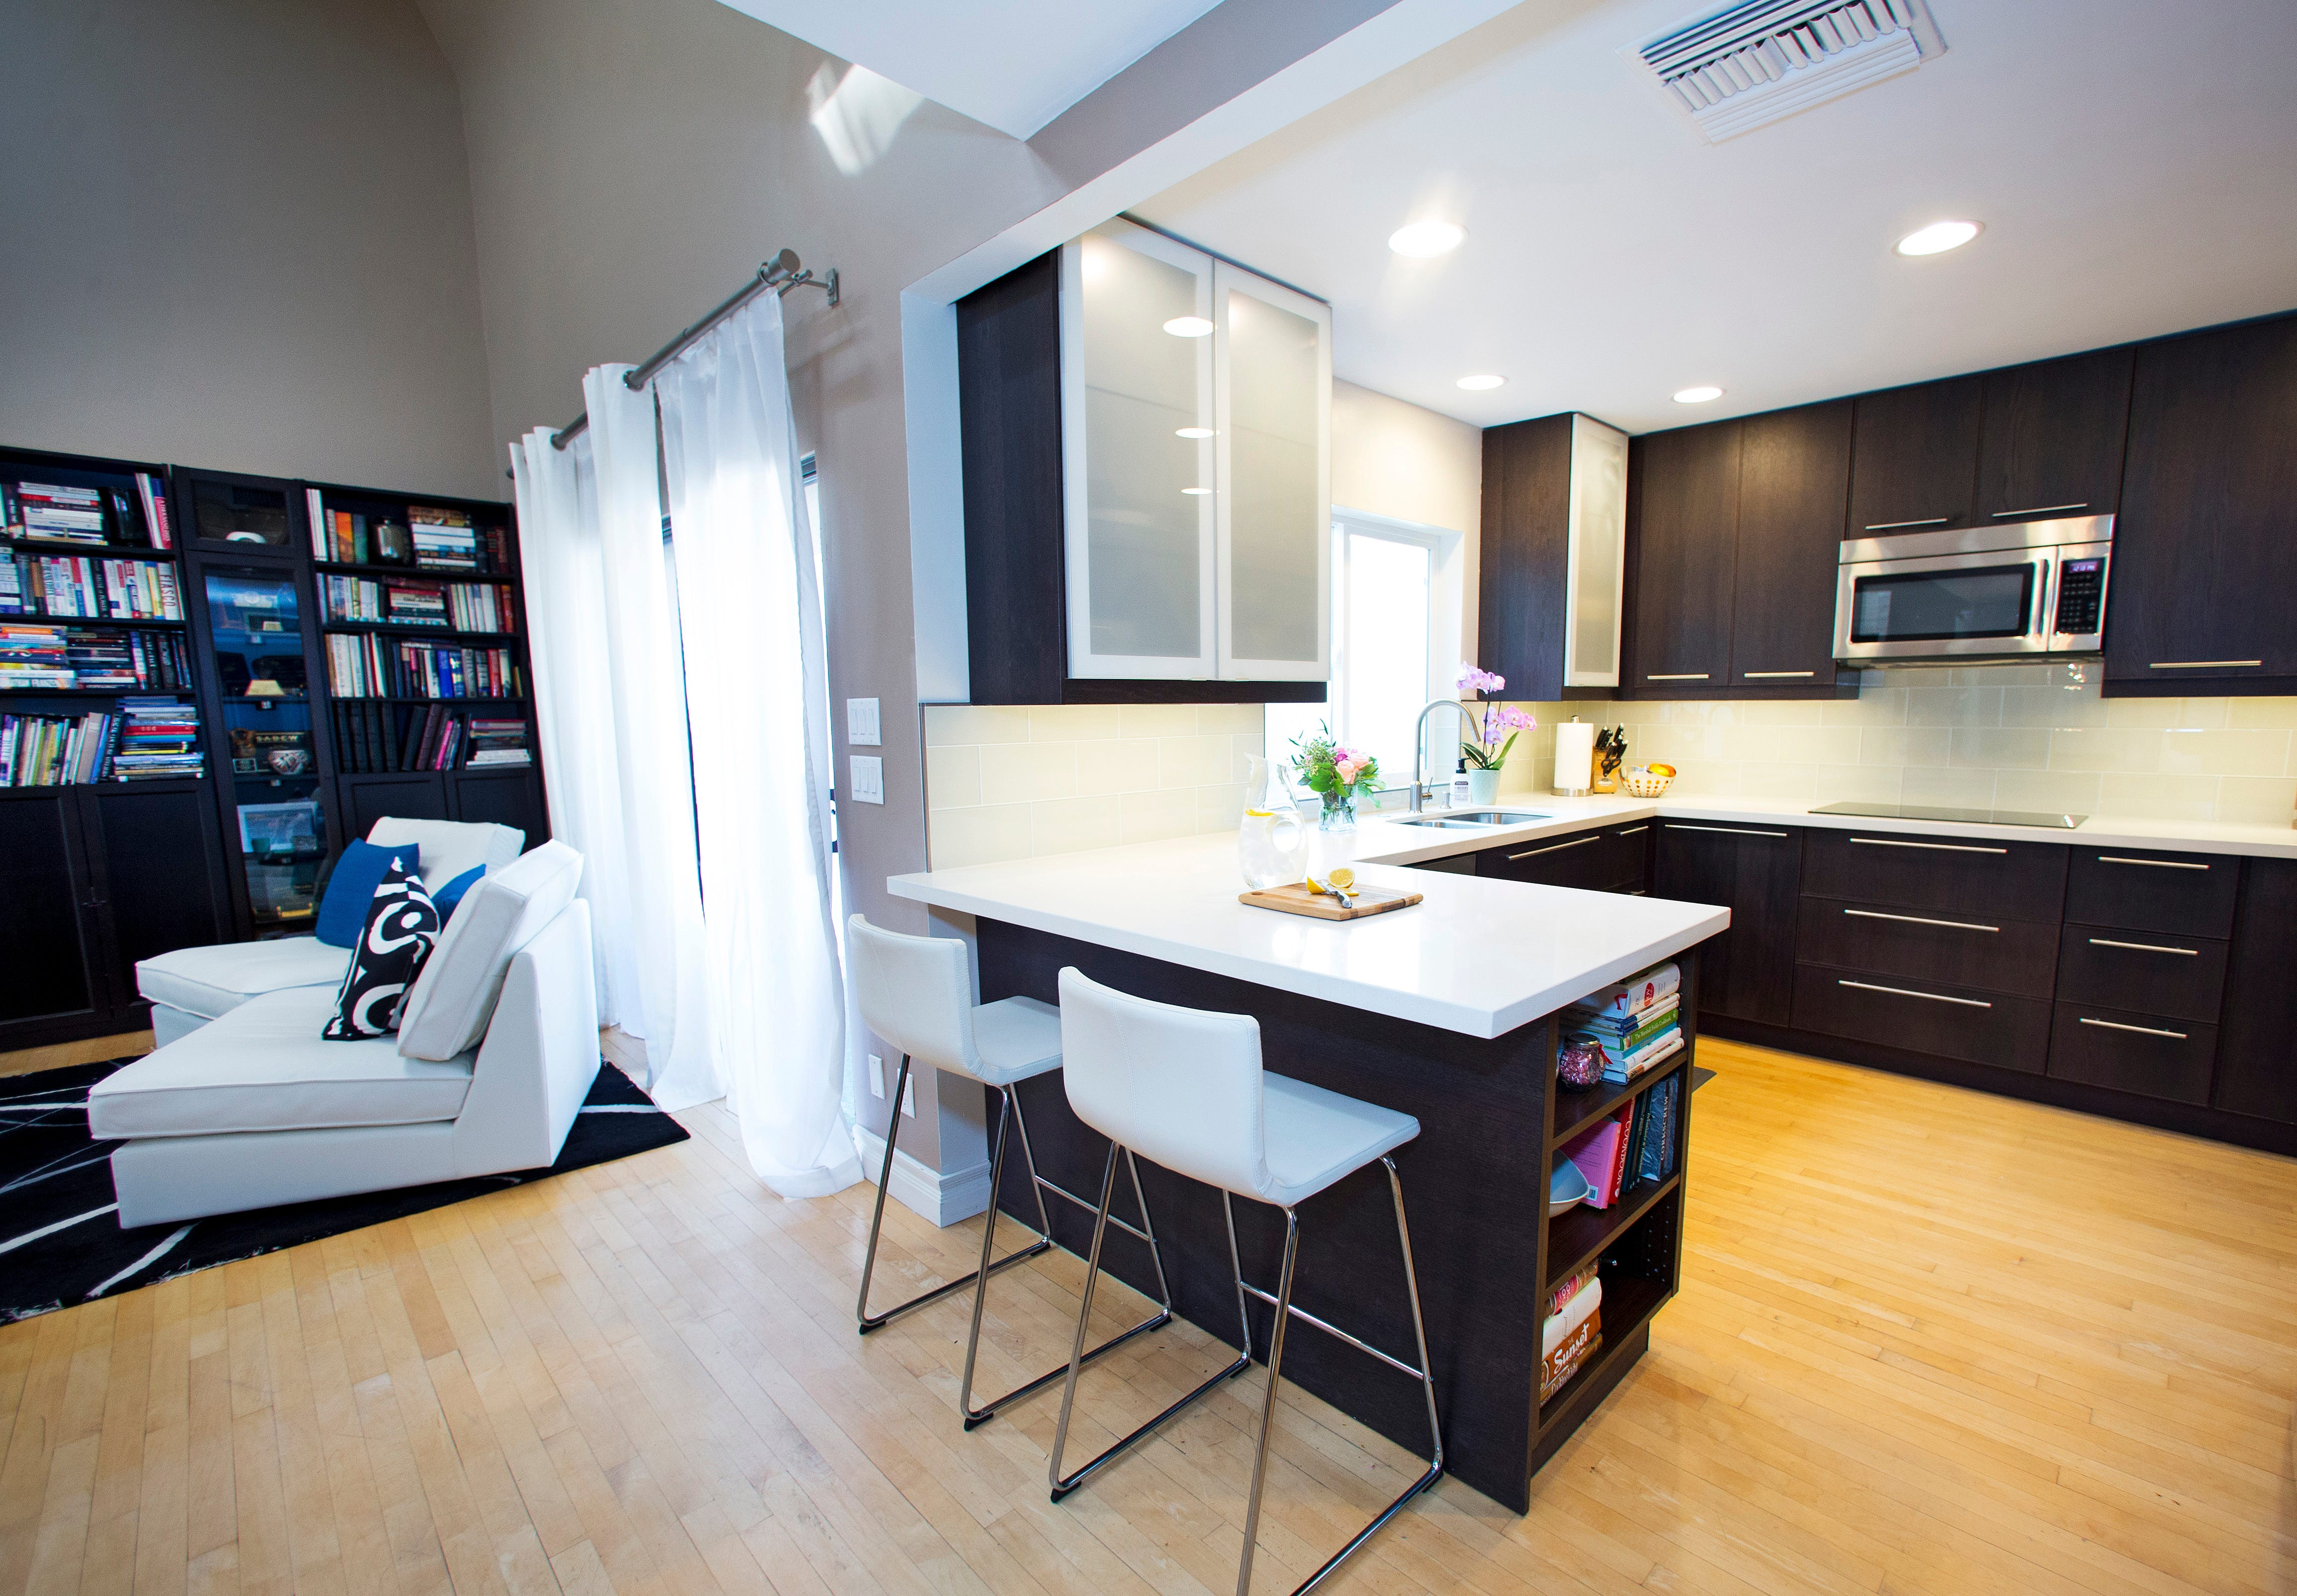 I spent $35,000 remodeling my kitchen, and here are 10 big lessons ...